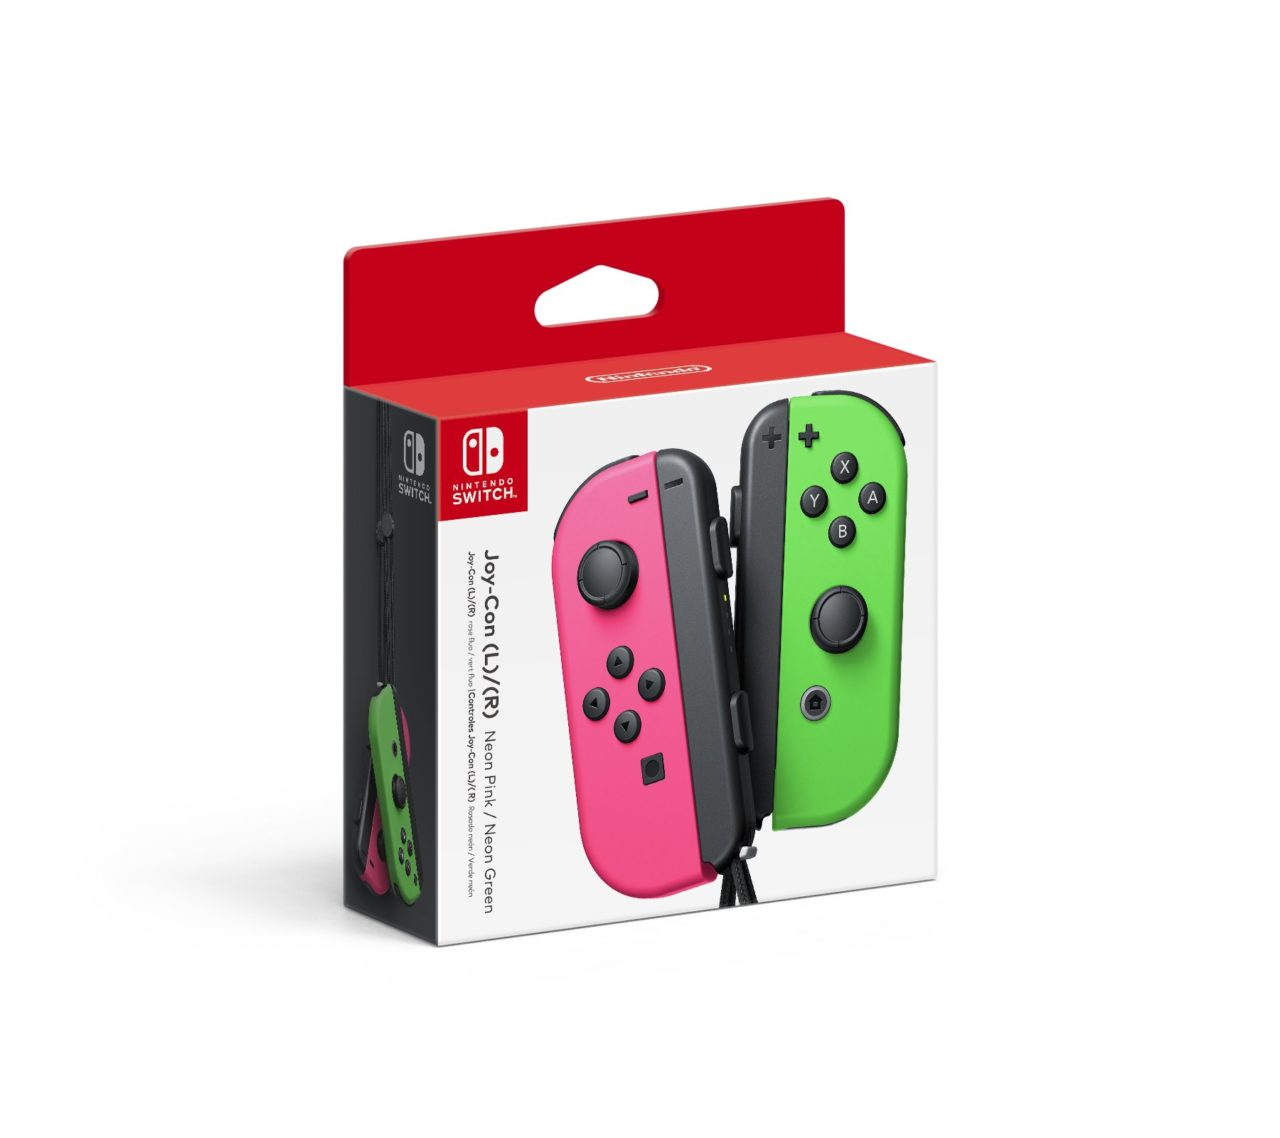 Pink (L) and Green (R) Joy-cons